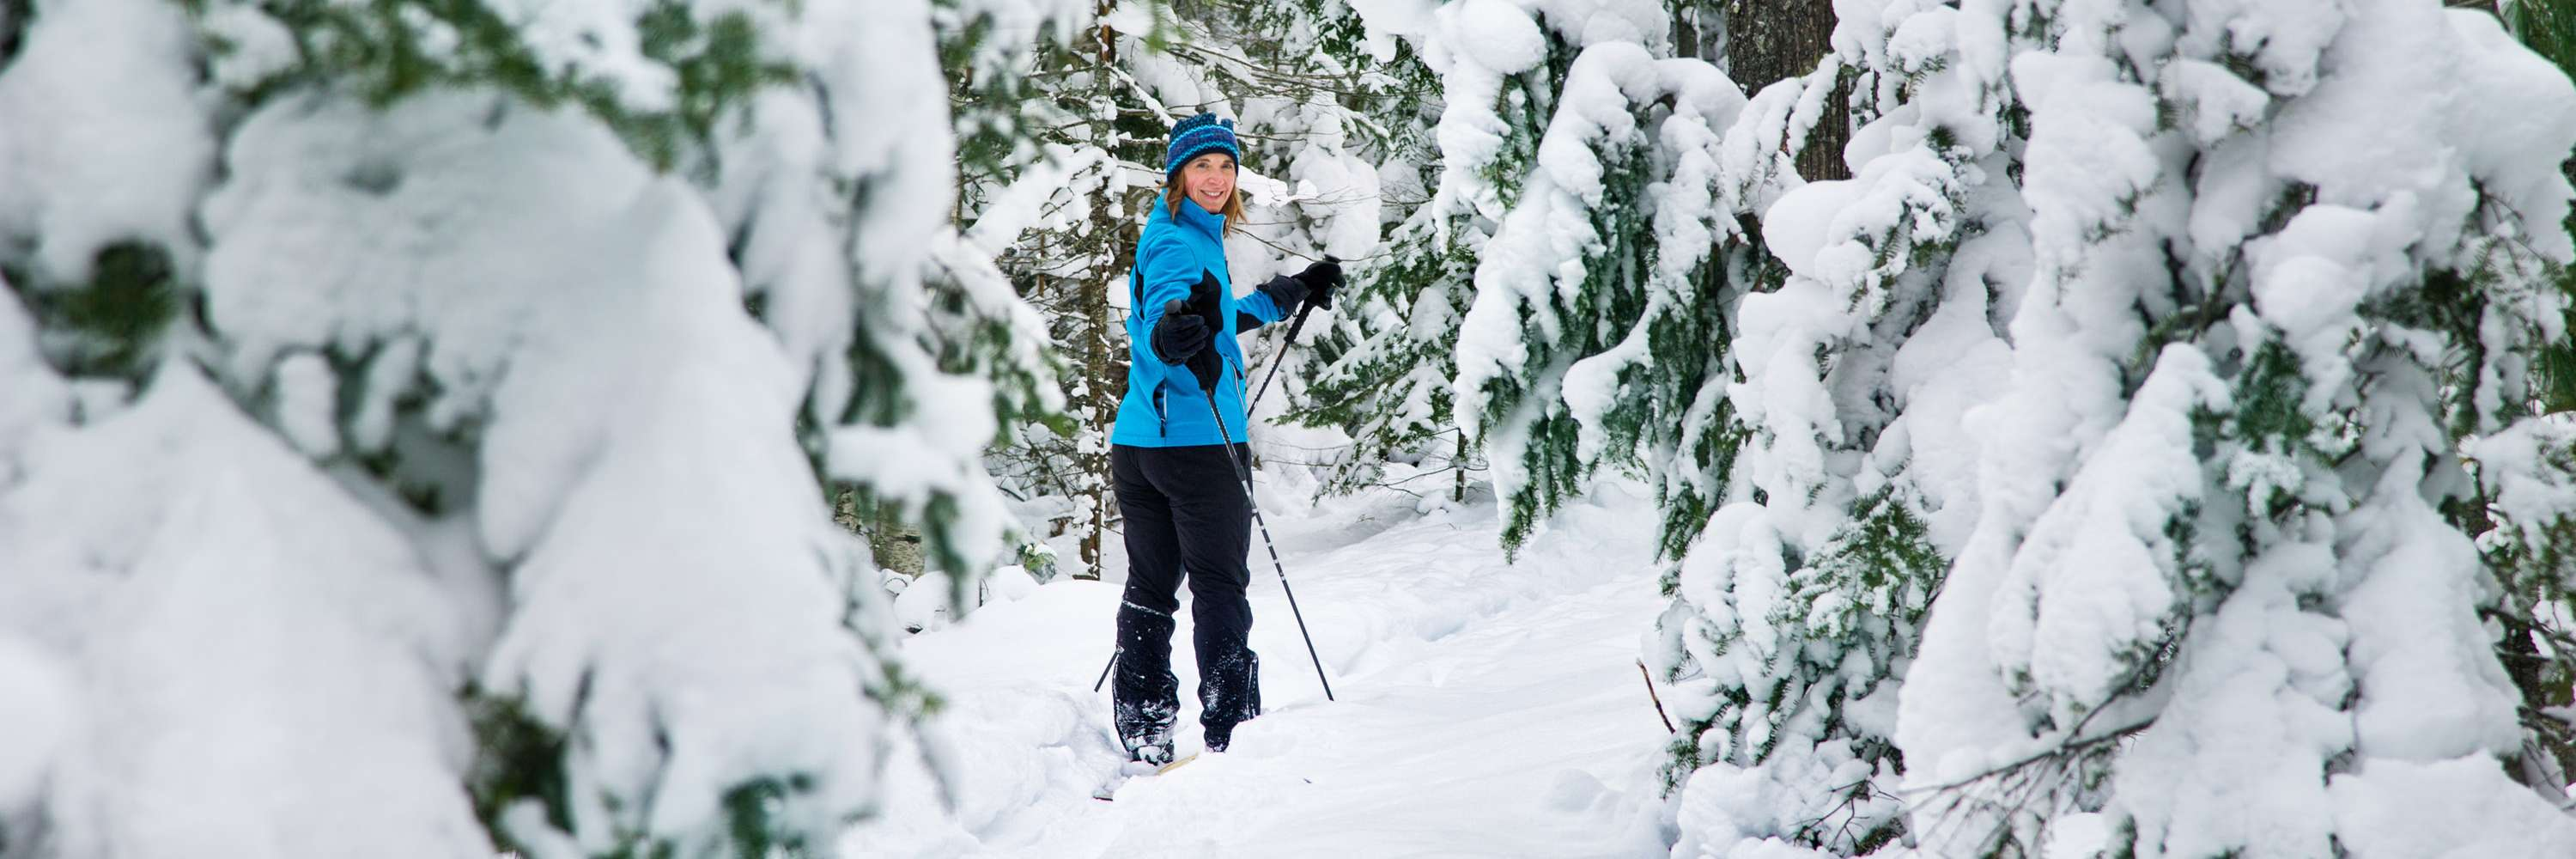 Cross country skier in snowy forest